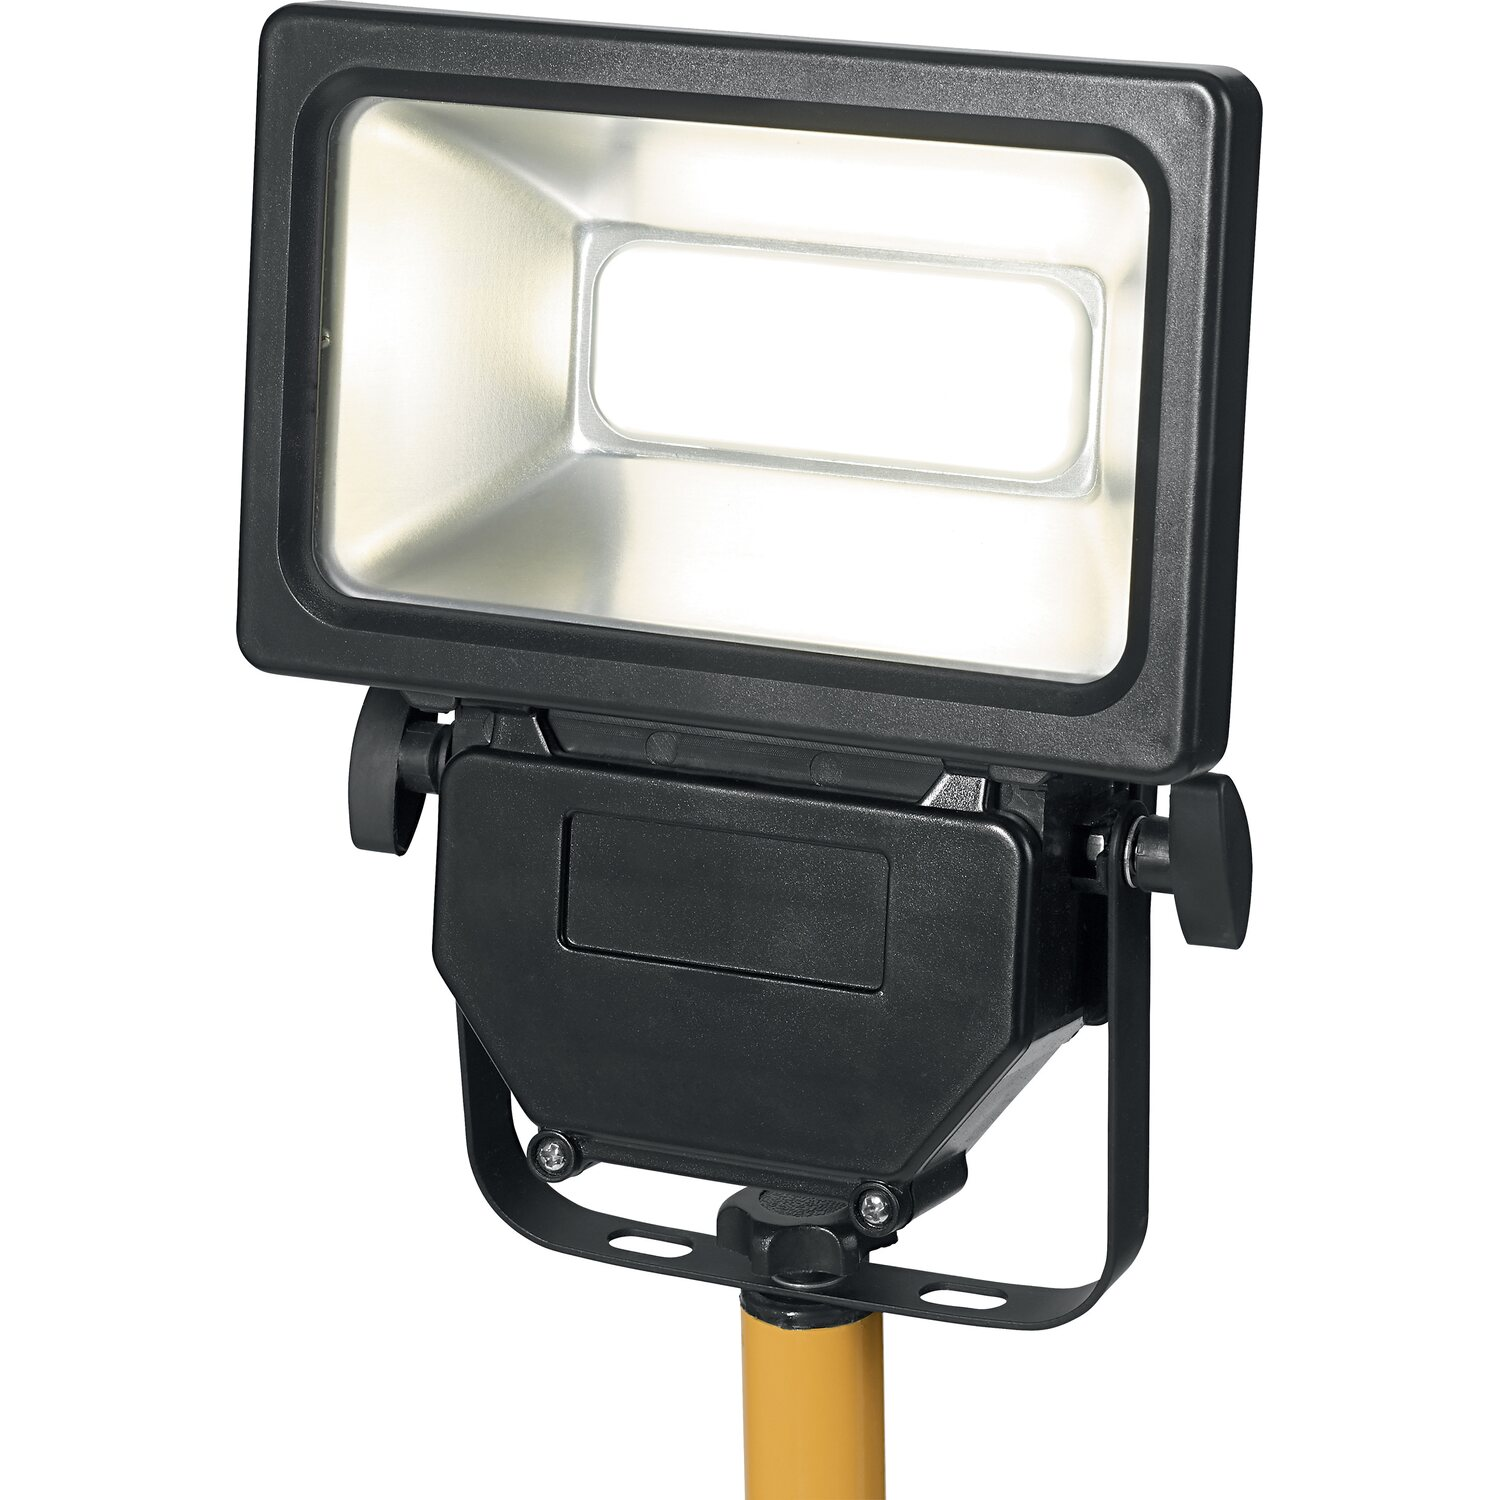 Obi faro da cantiere a led con treppiede 10 w acquista da obi for Obi illuminazione